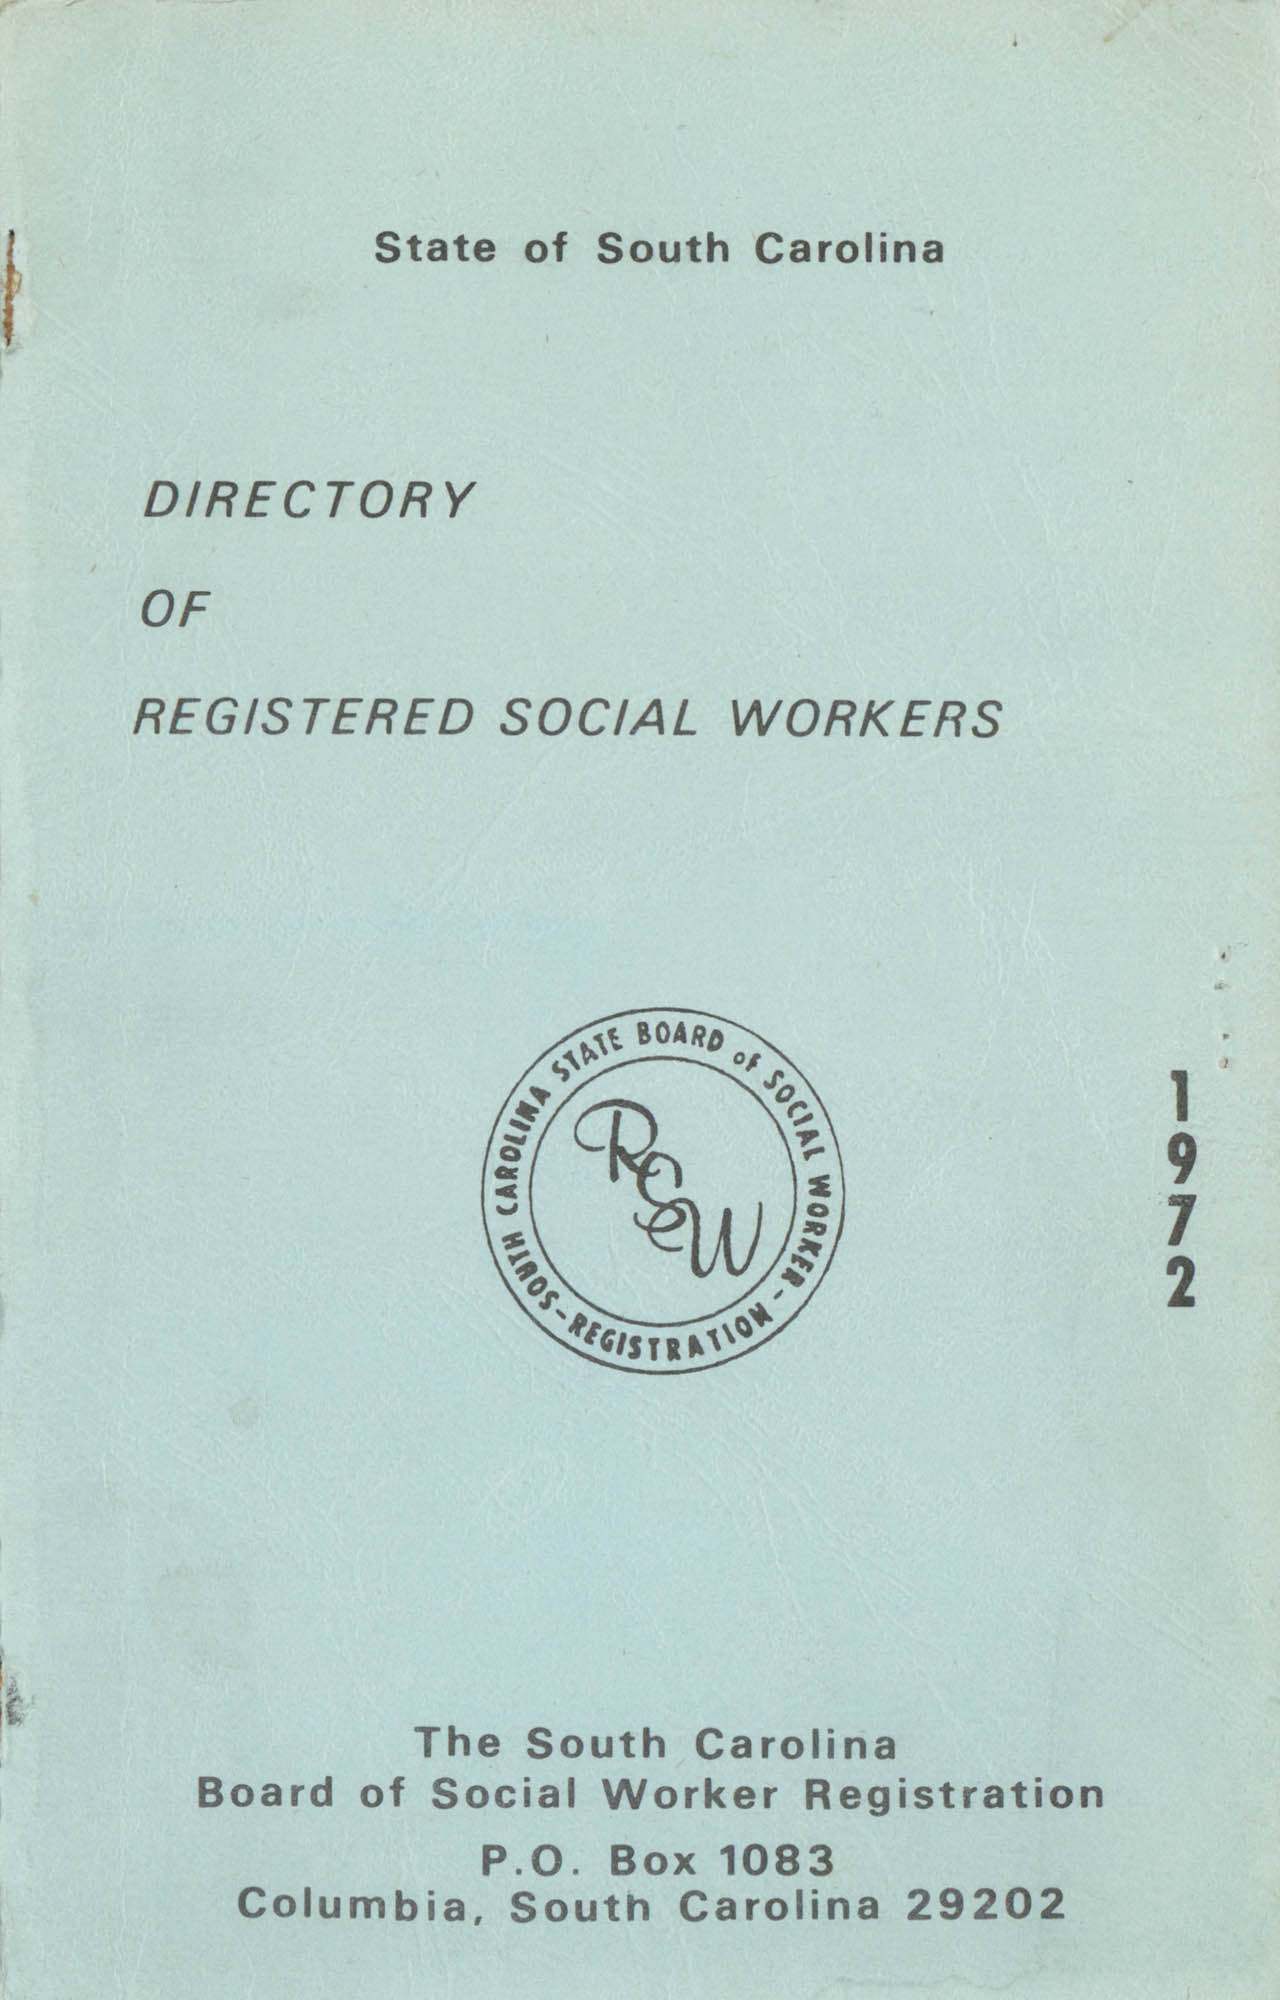 State of South Carolina Directory of Registered Social Workers, 1972, Front Cover